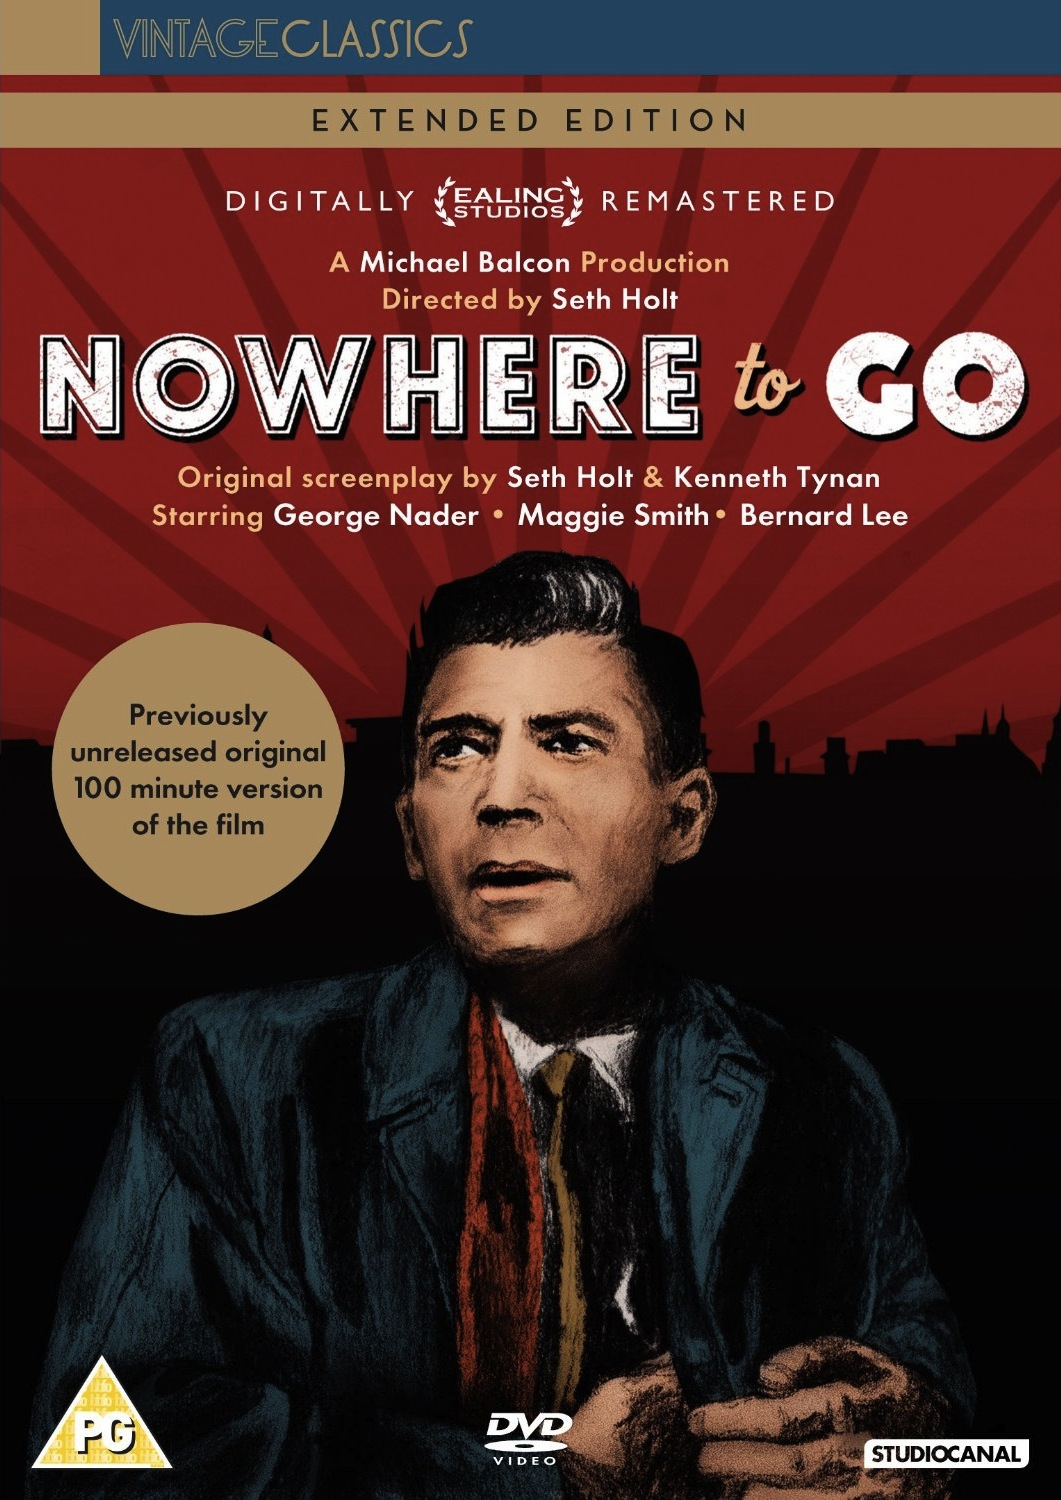 ... BRITISH CULT CLASSICS: Nowhere to Go - Extended Edition / DVD Review